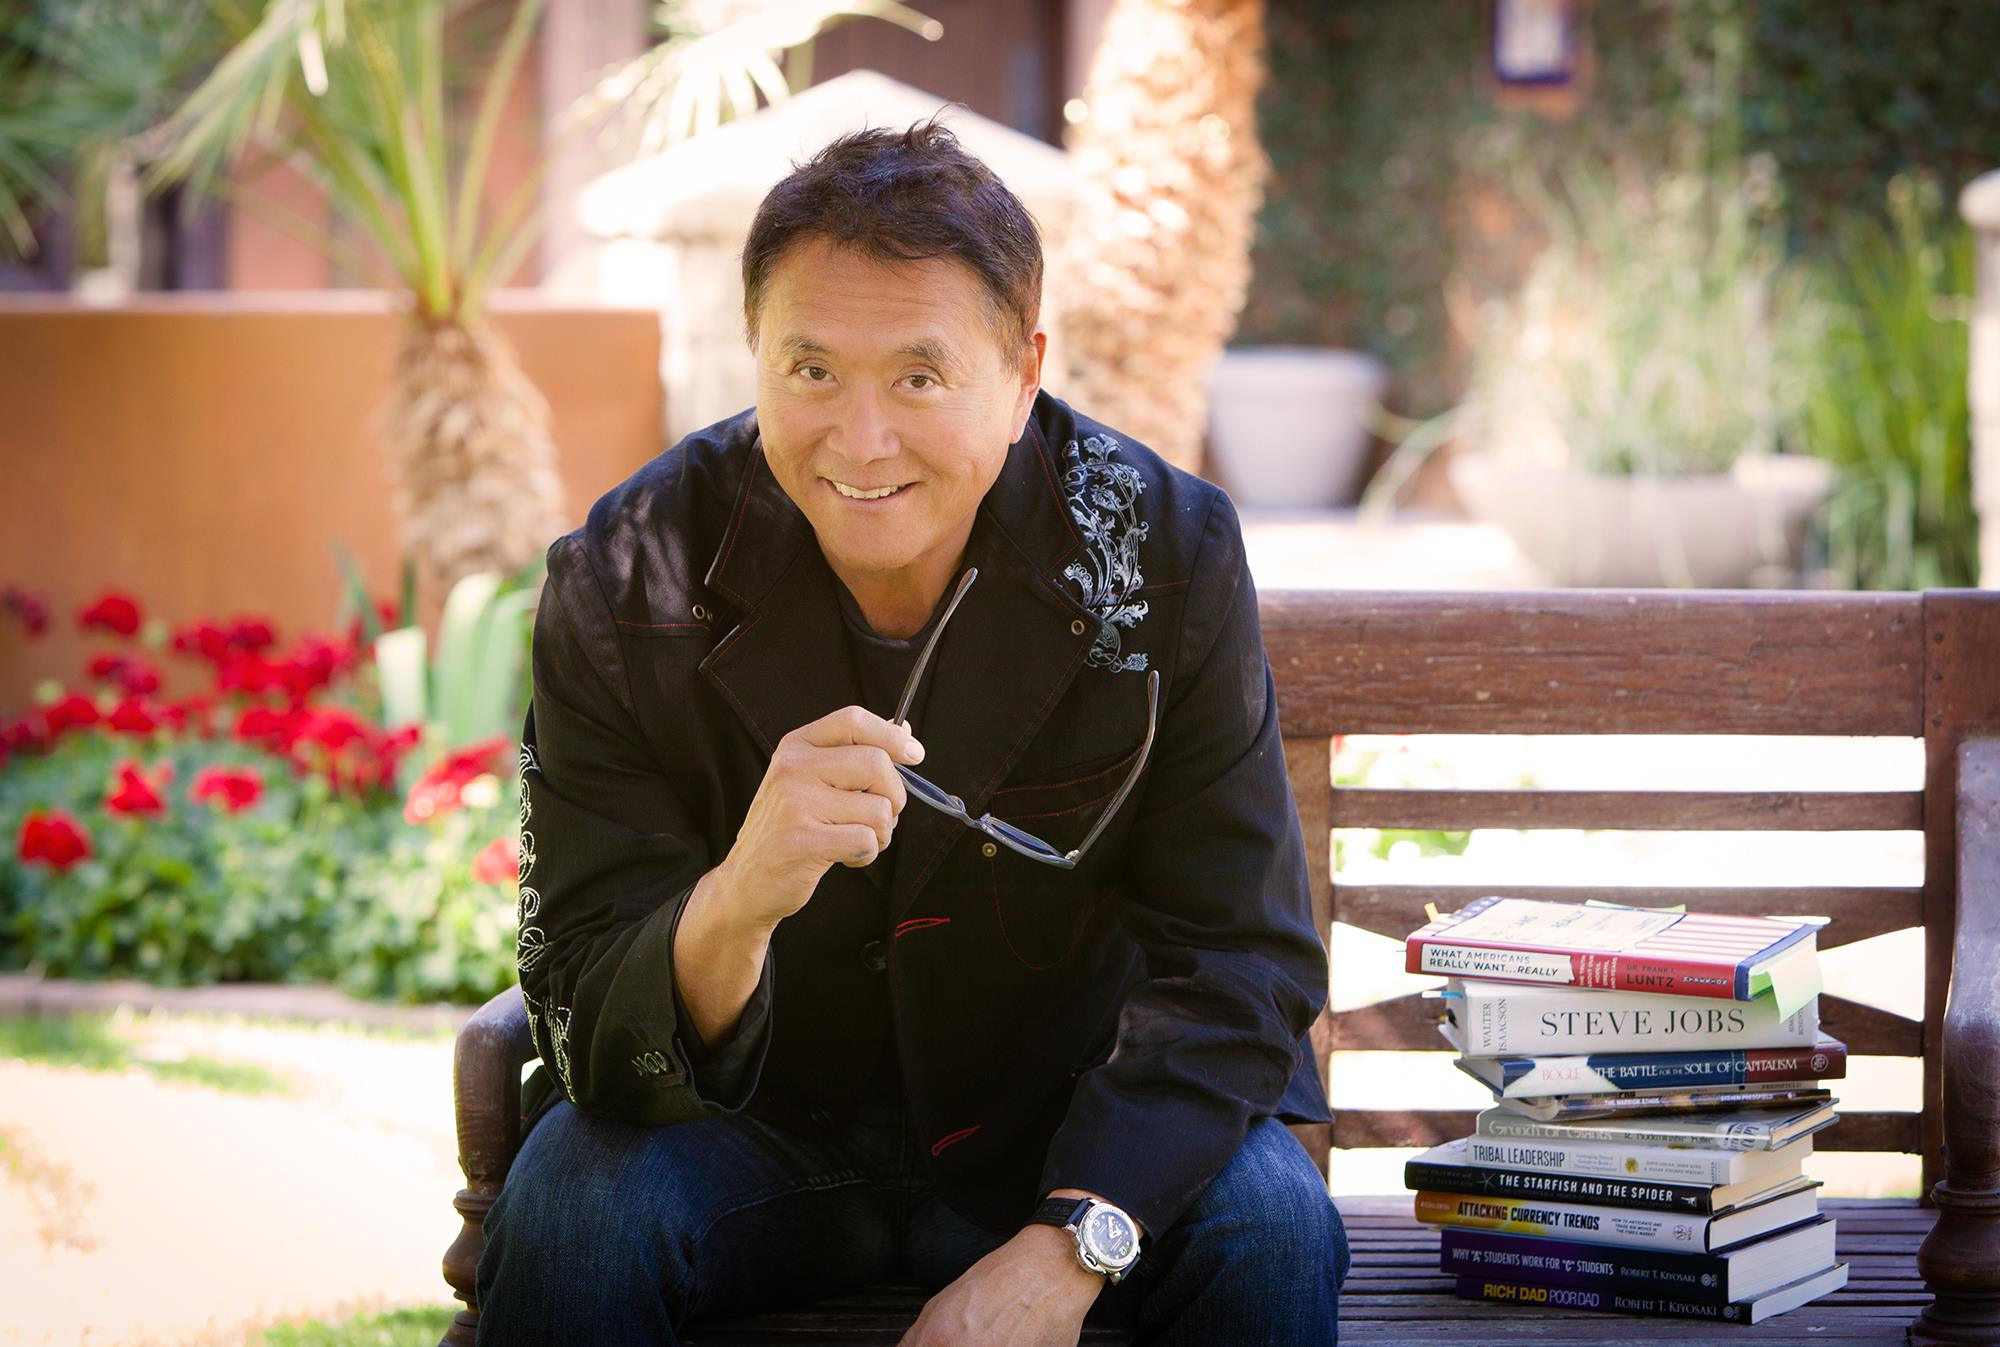 Robert-Kiyosaki-Top-Success-Speakers